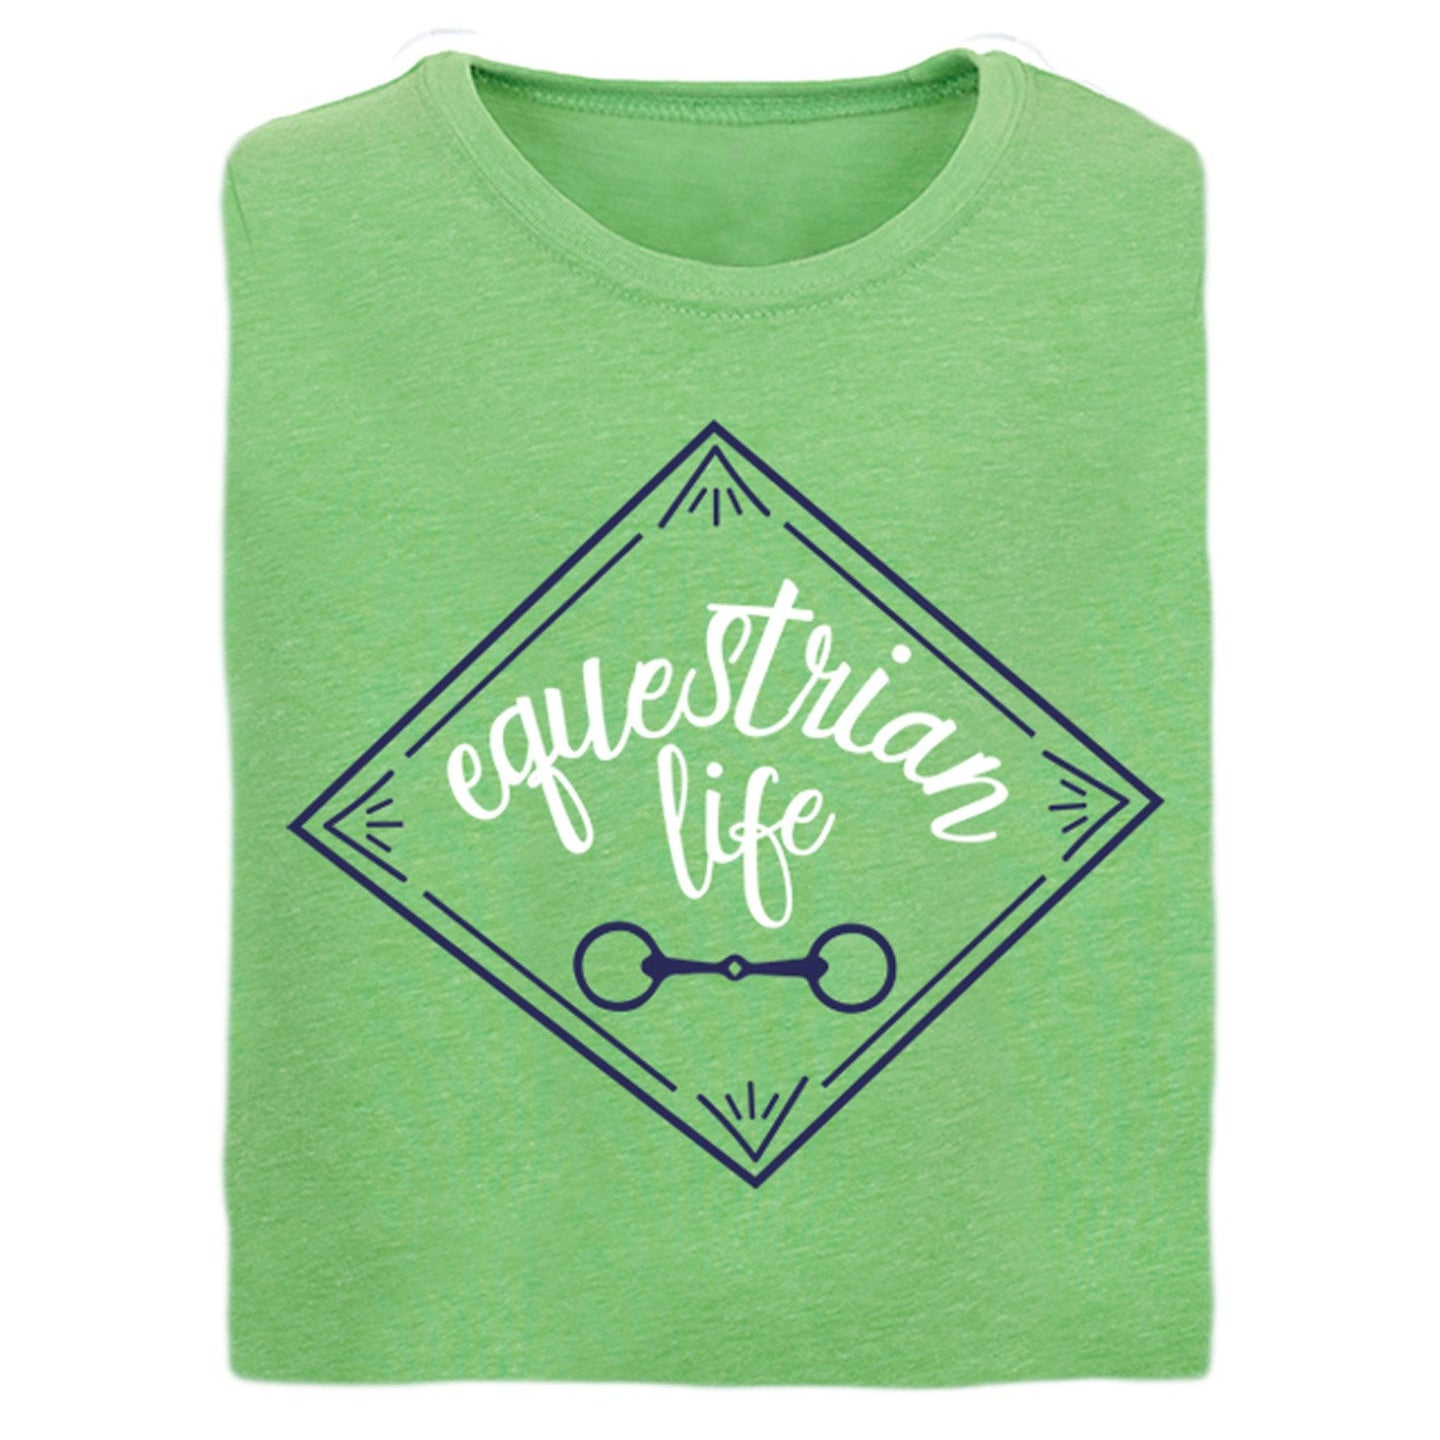 21152 Equestrian Life Girls Short Sleeve Tee